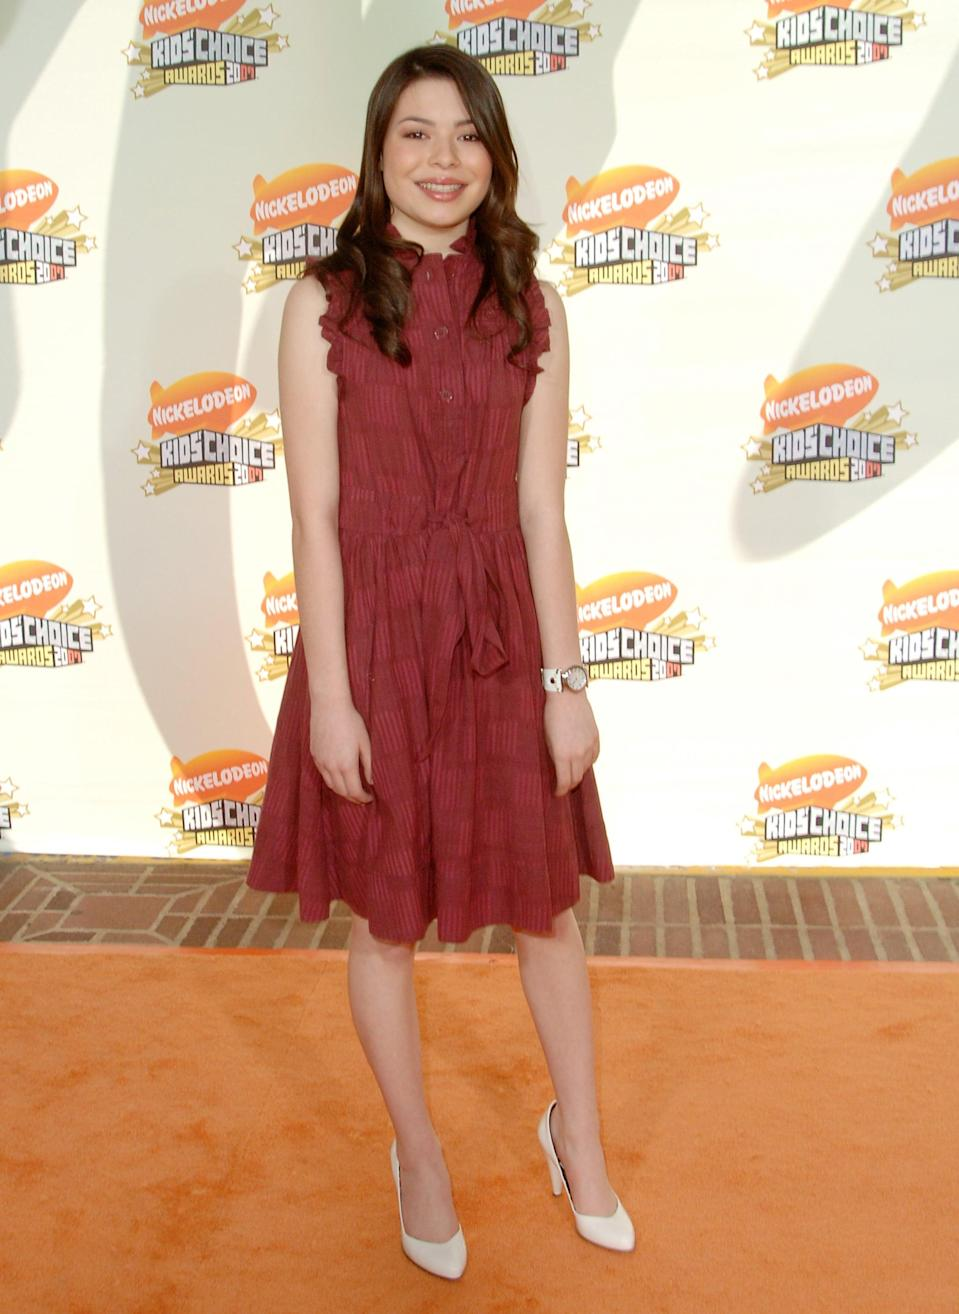 <p>Miranda Cosgrove was 14 years old when <strong>iCarly</strong> originally aired on Nickelodeon. As the show was beginning, her role as Megan, the infamous little sister on <strong>Drake &amp; Josh</strong>, was coming to an end. The finale for <strong>Drake &amp; Josh</strong> aired in September 2007, which was around the same time <strong>iCarly</strong> premiered. That year, Cosgrove also guest starred in an episode of <strong>Zoey 101</strong> as Paige Howard, an extremely intelligent student.</p>